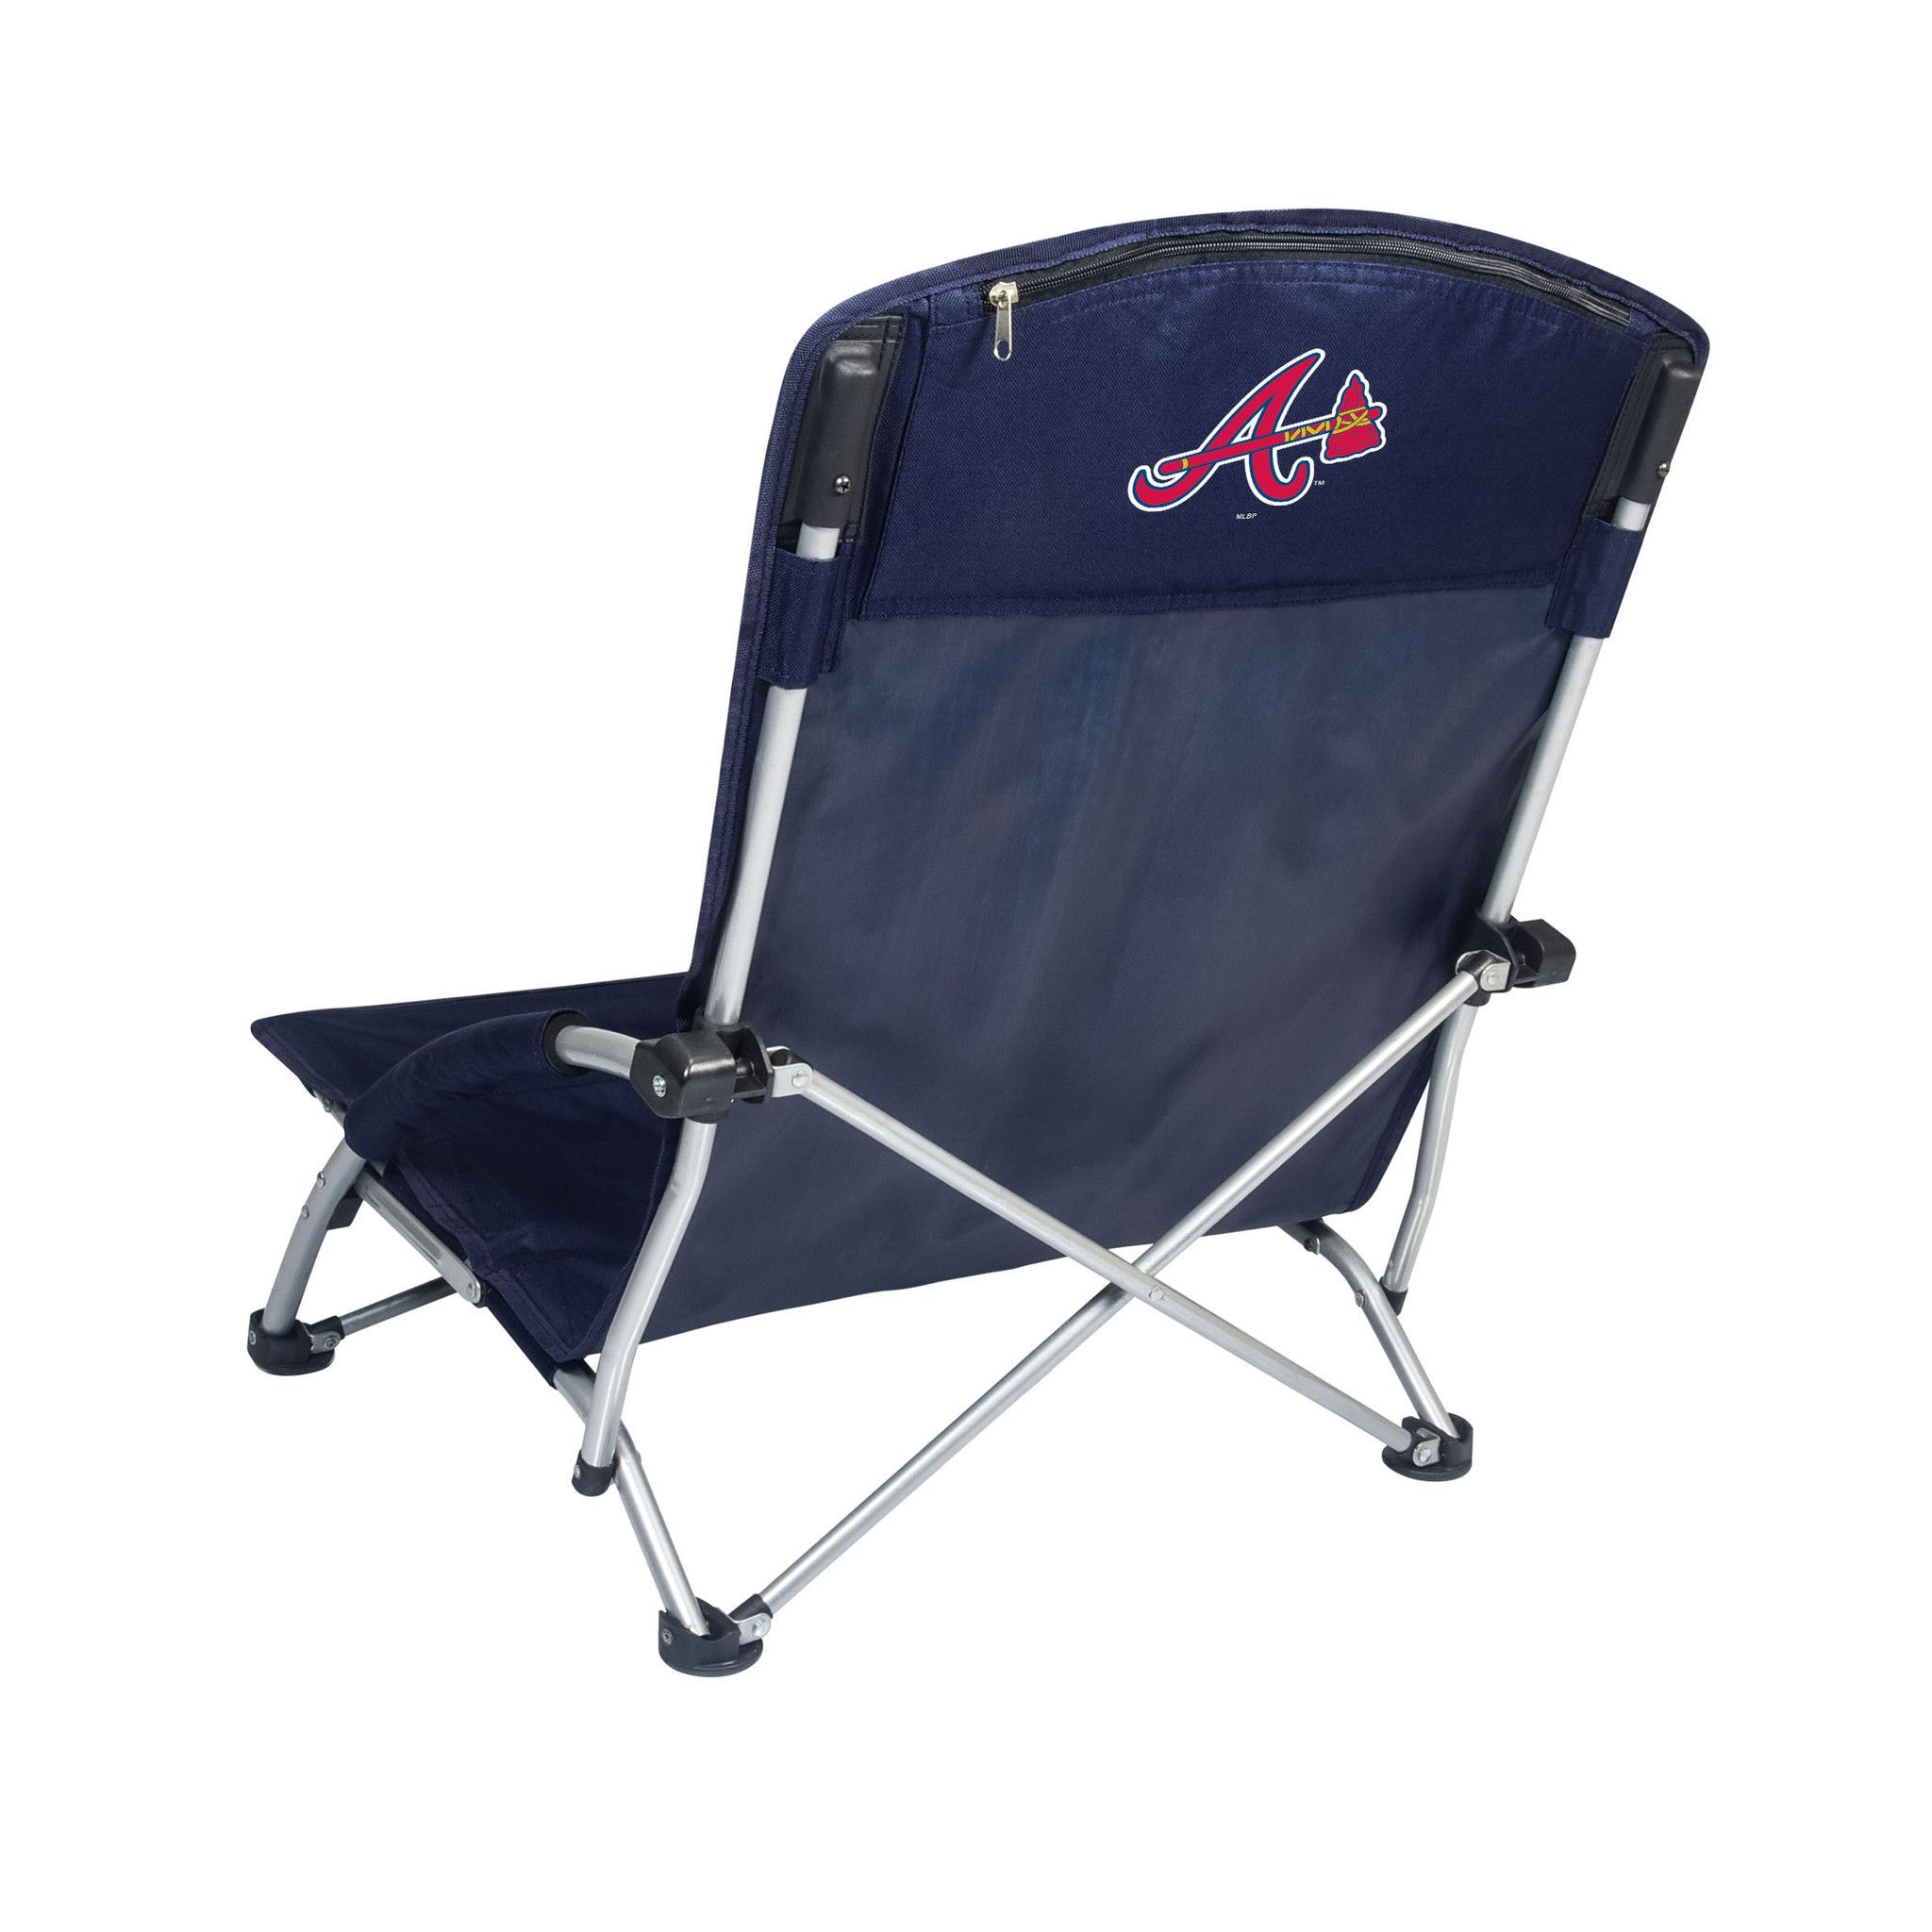 The Atlanta Braves Tranquility Chair Is Great For The